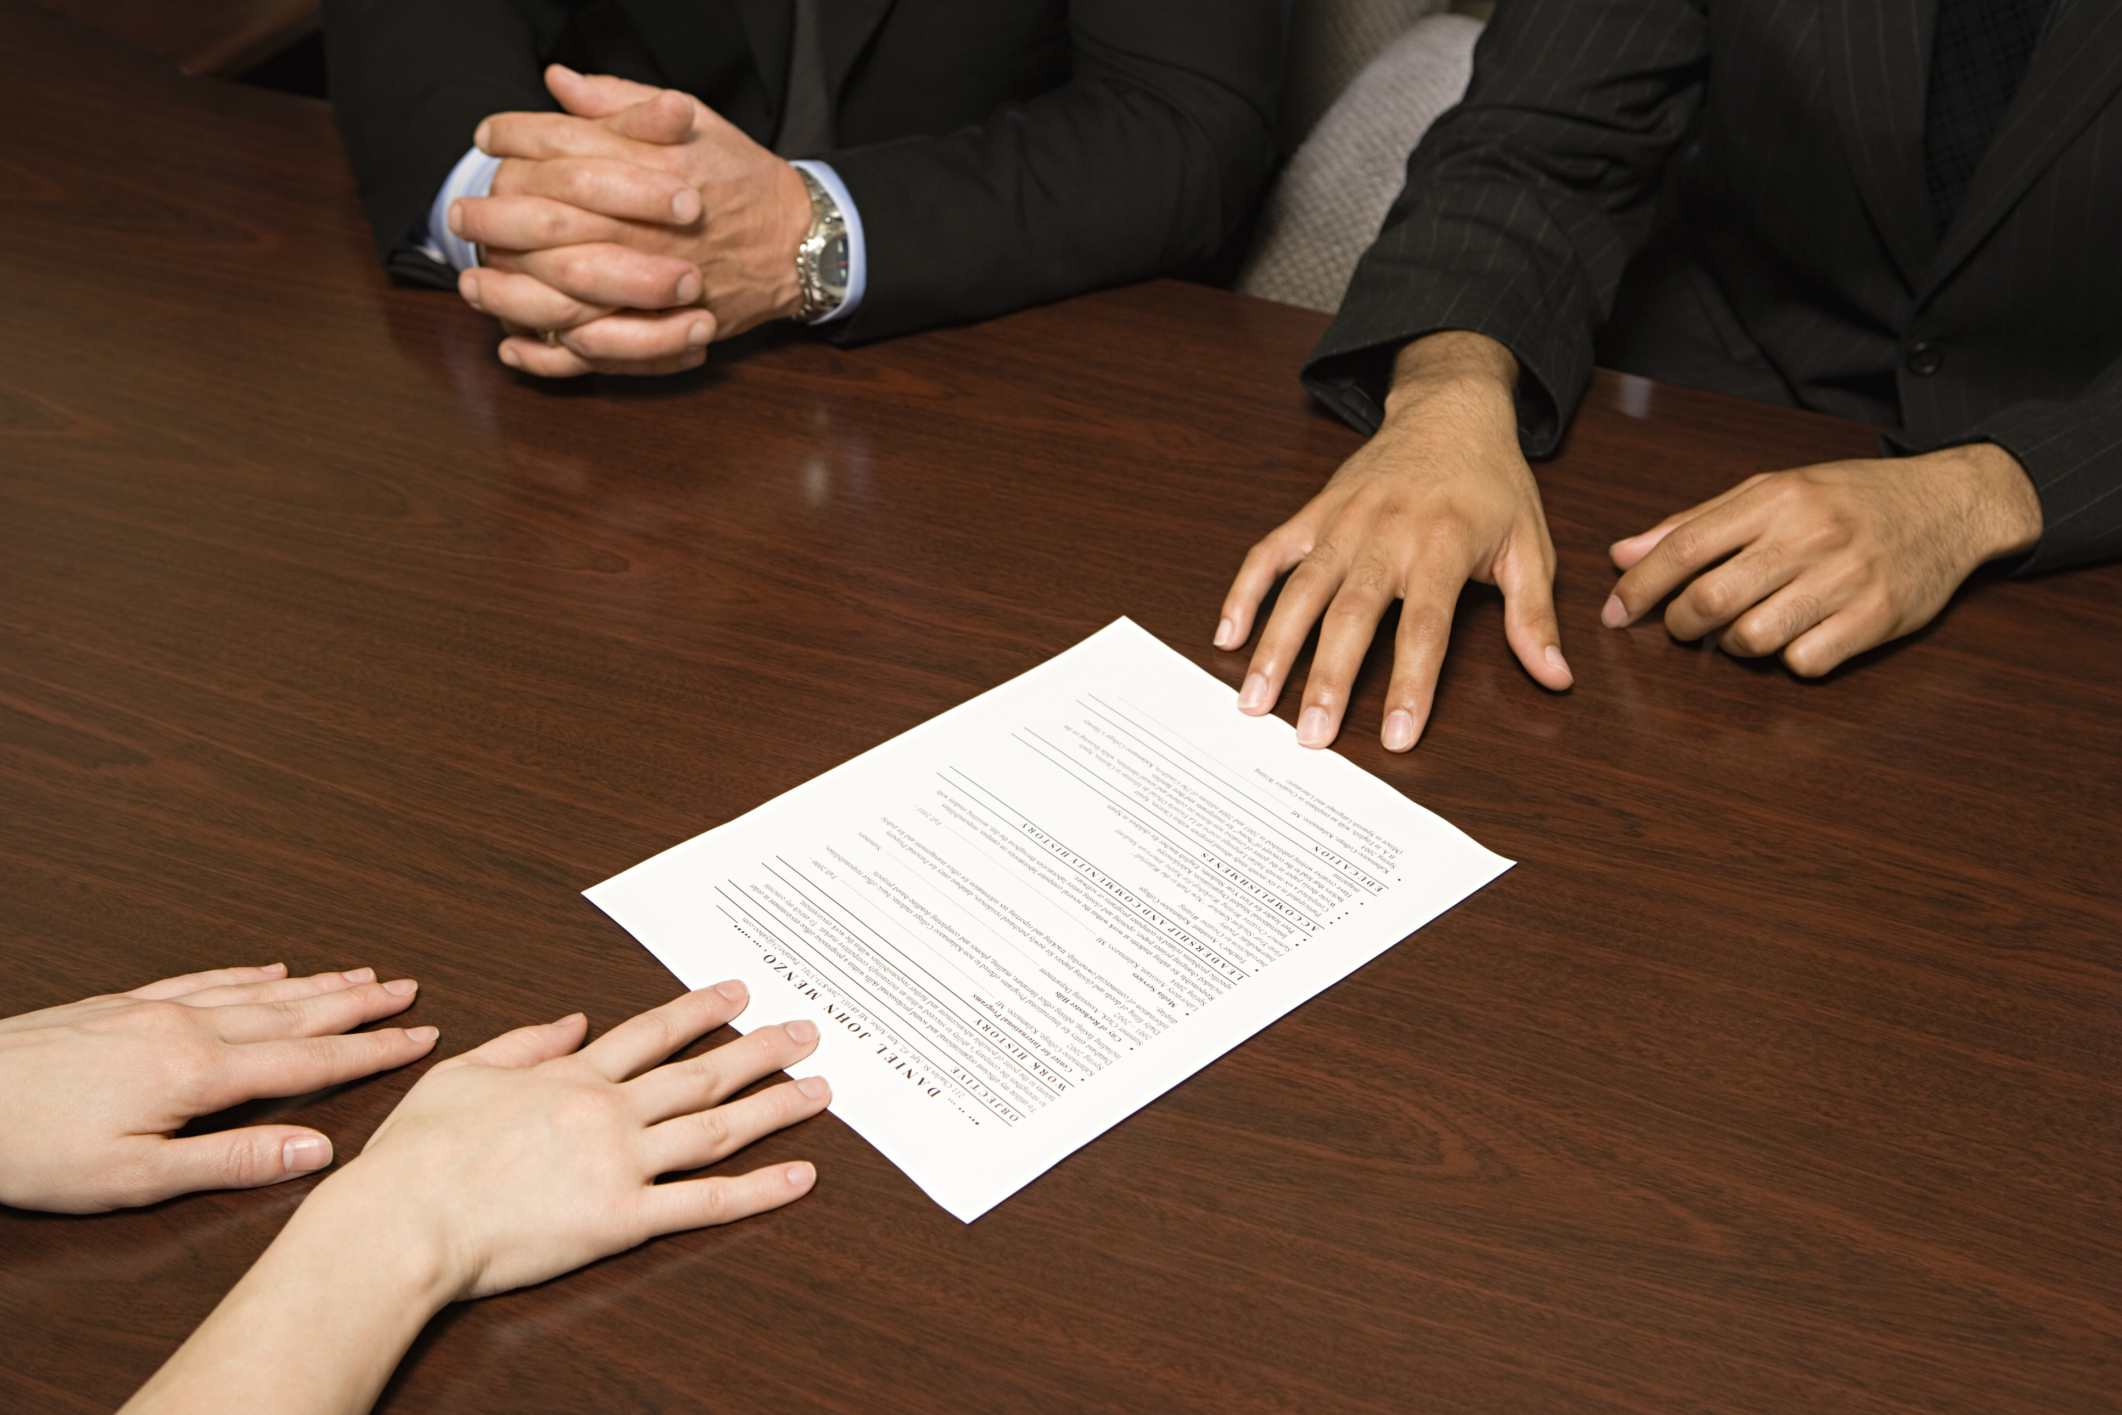 hands with resume